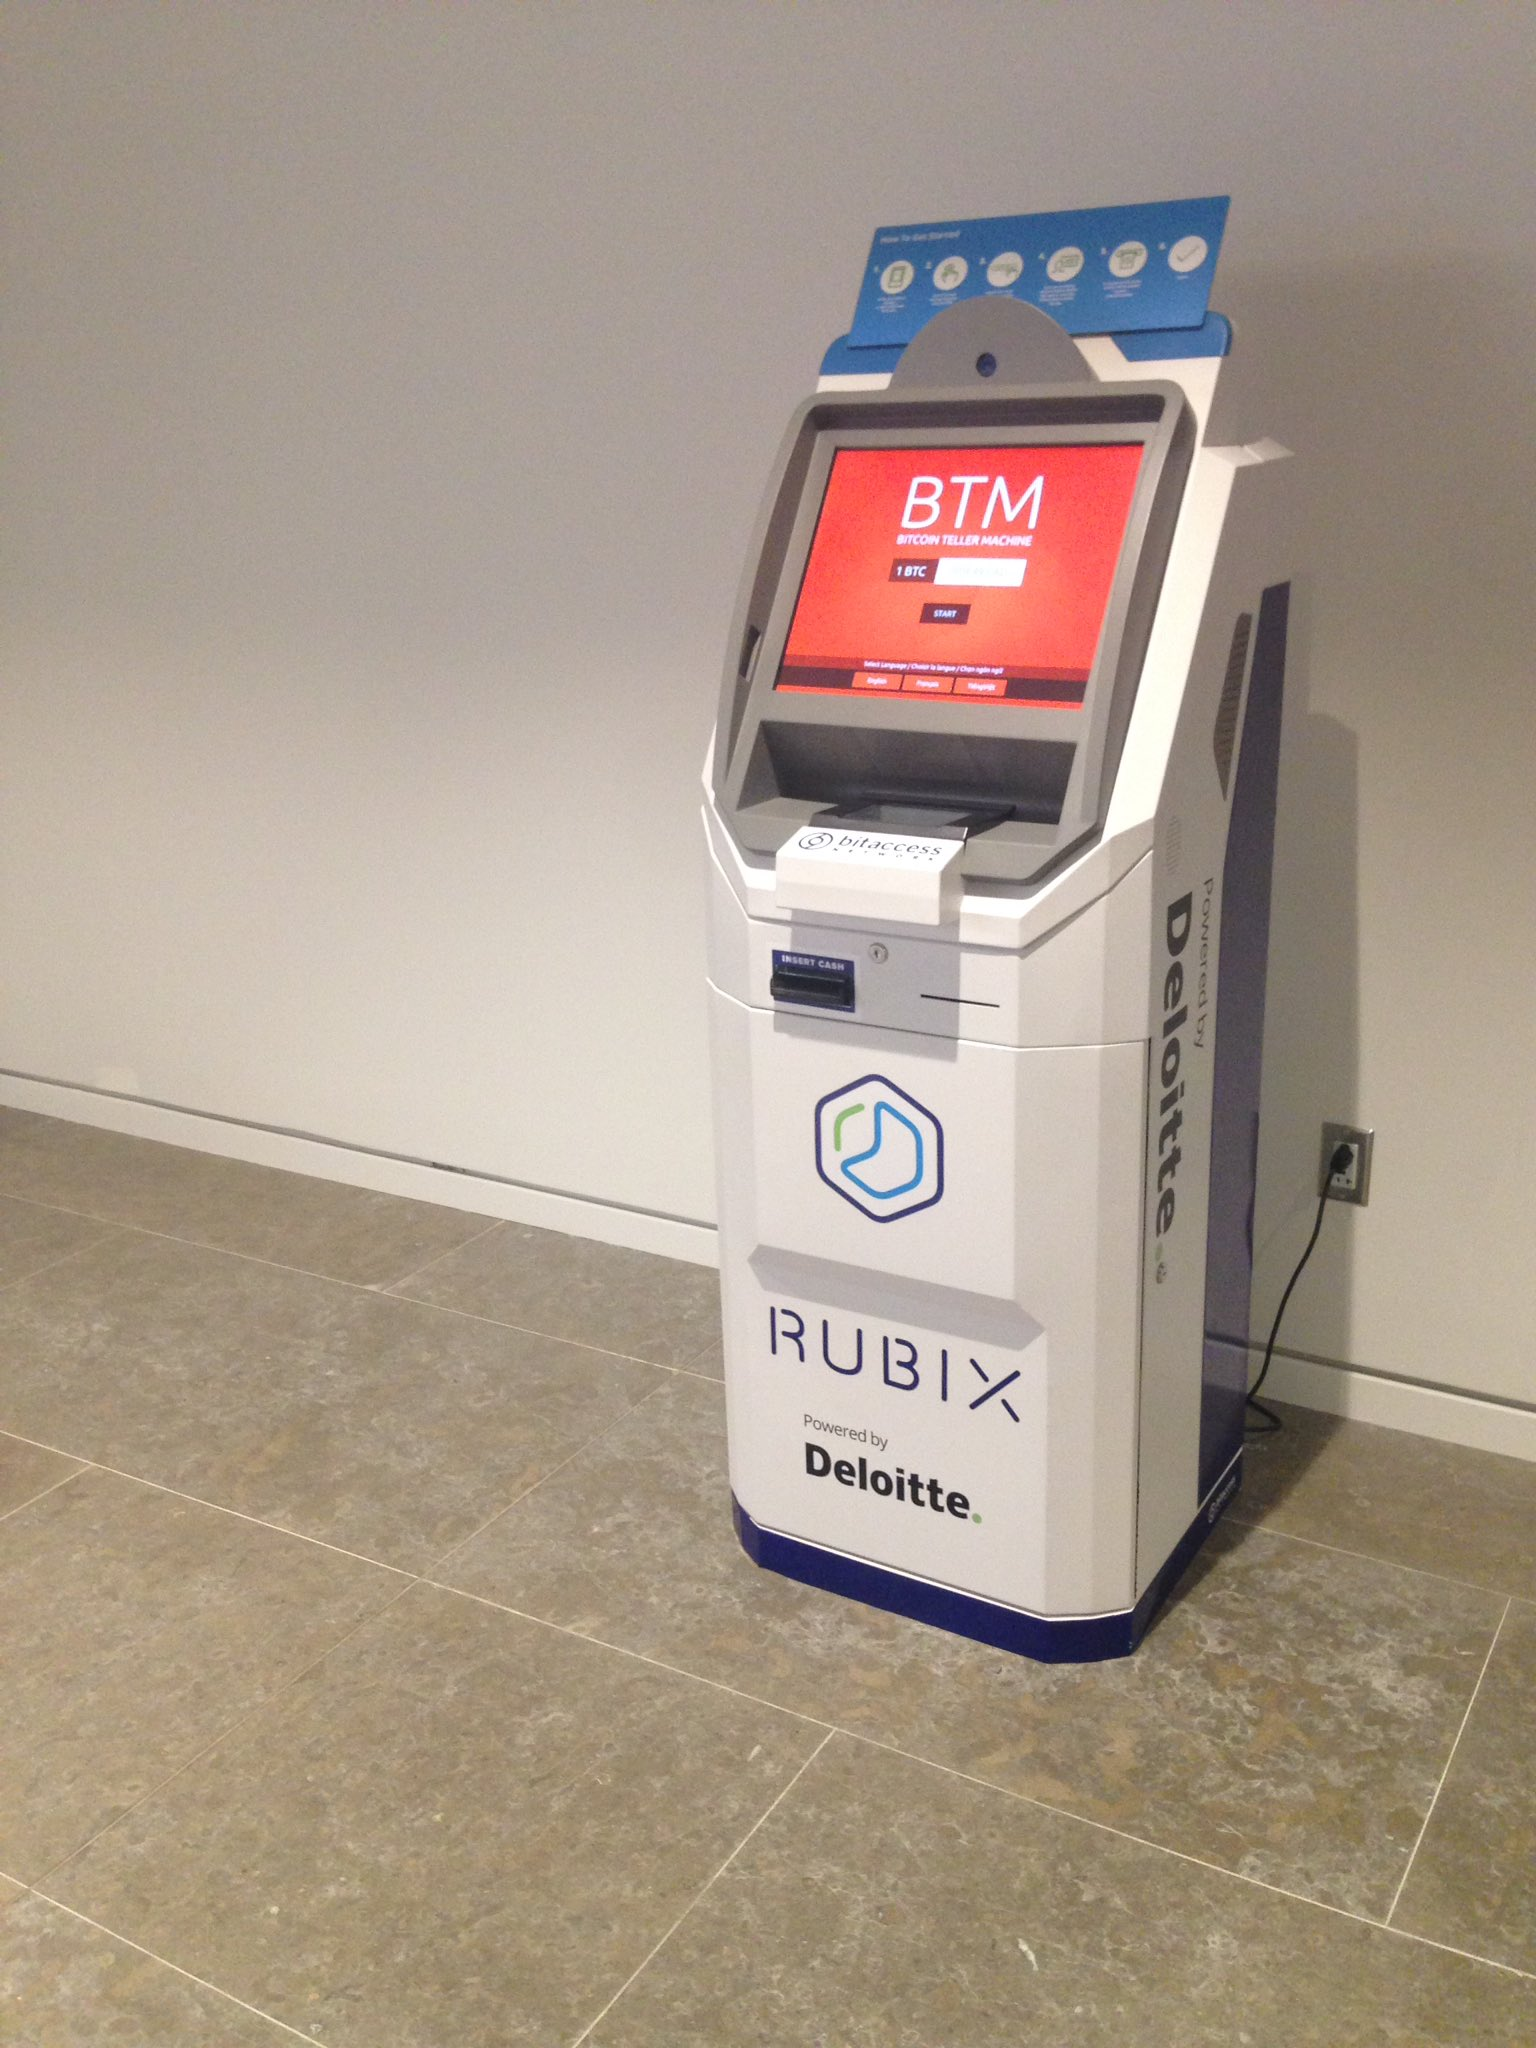 The Bitcoin transaction machine